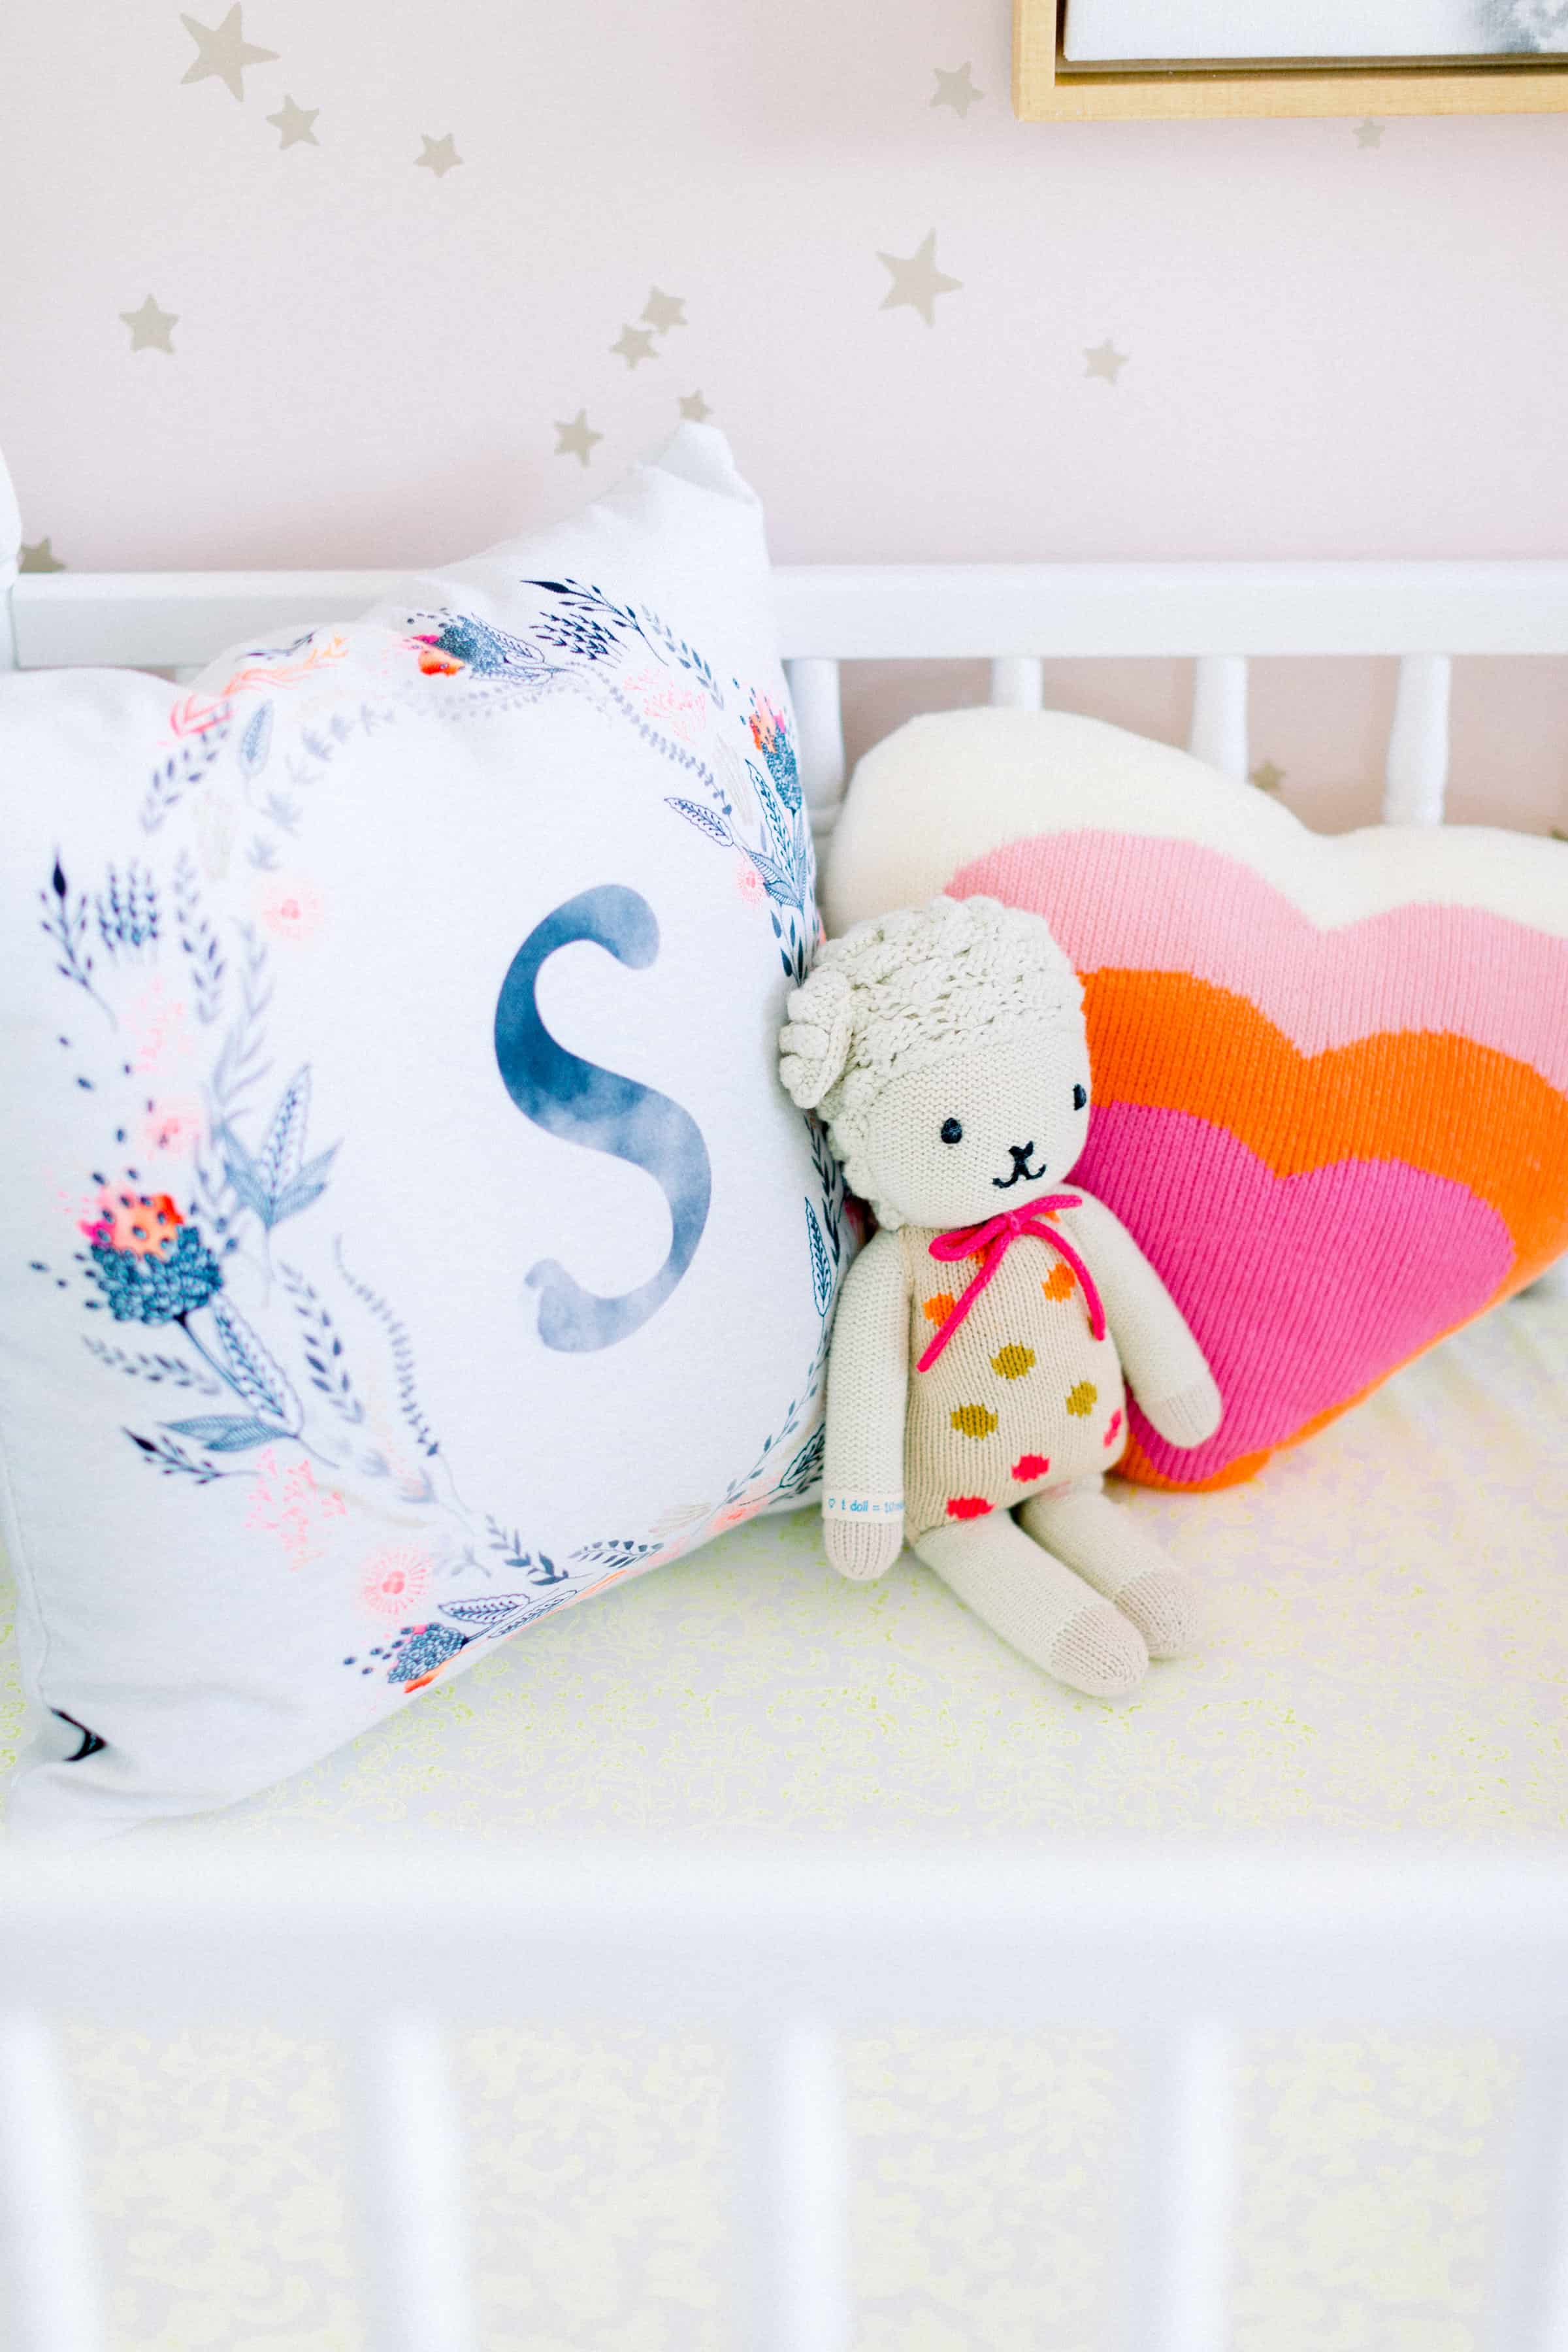 S pillow, cuddle and kind doll, and heart rainbow pillow in crib